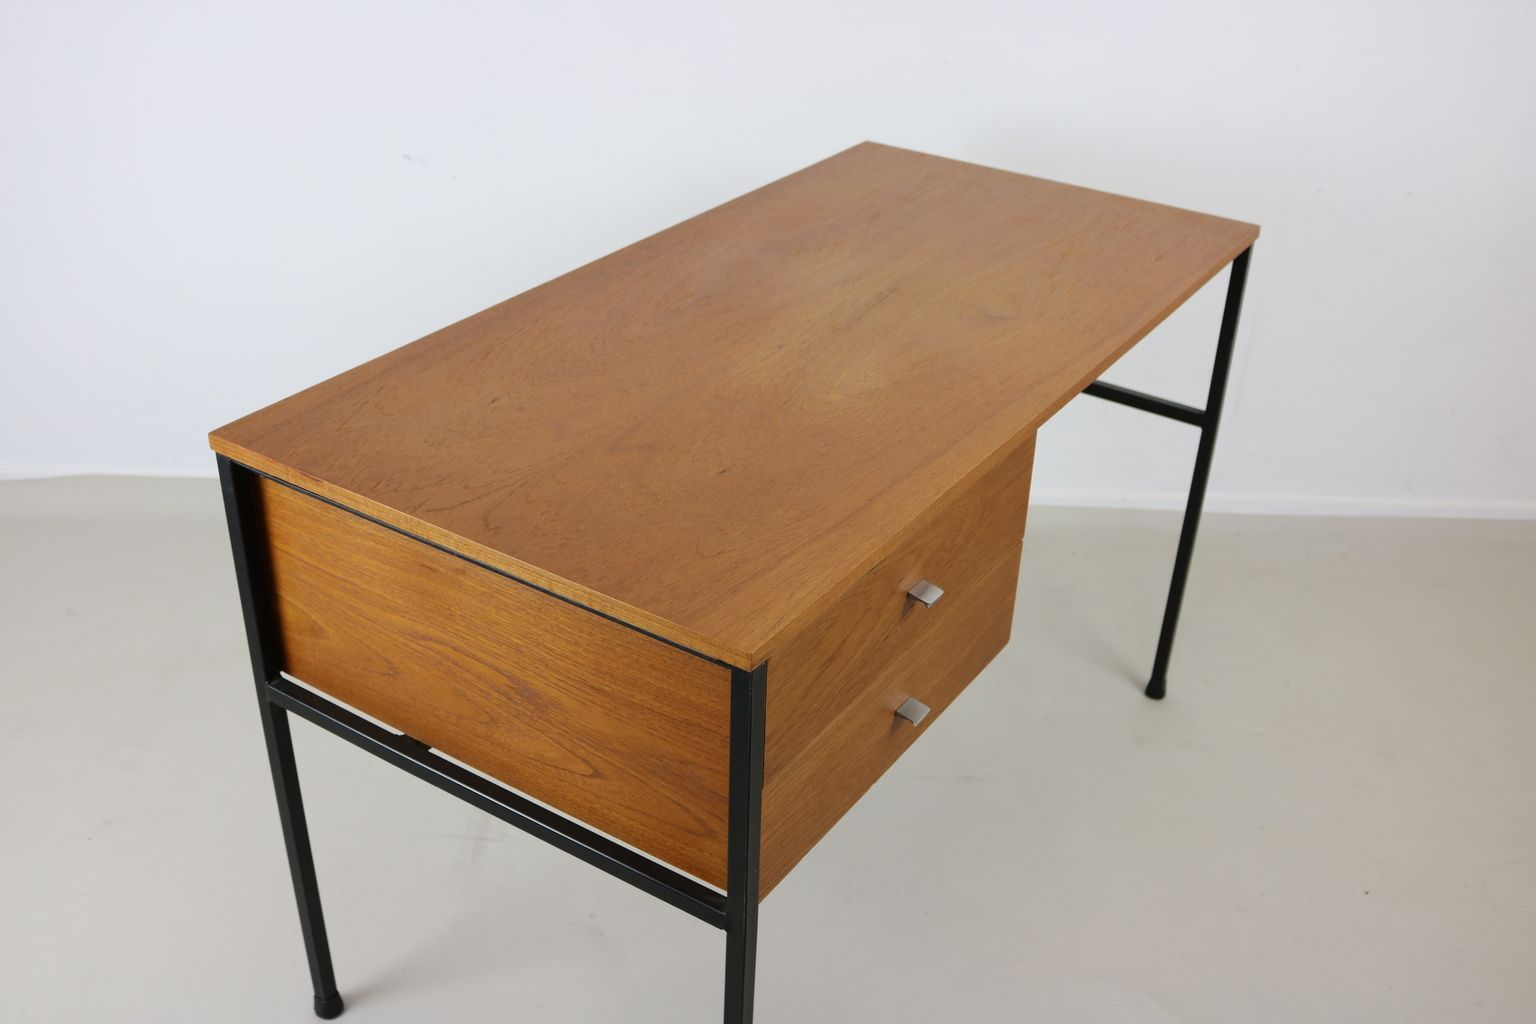 bureau deux tiroirs par desk par pierre guariche pour meurop belgium 1965 en vente sur pamono. Black Bedroom Furniture Sets. Home Design Ideas